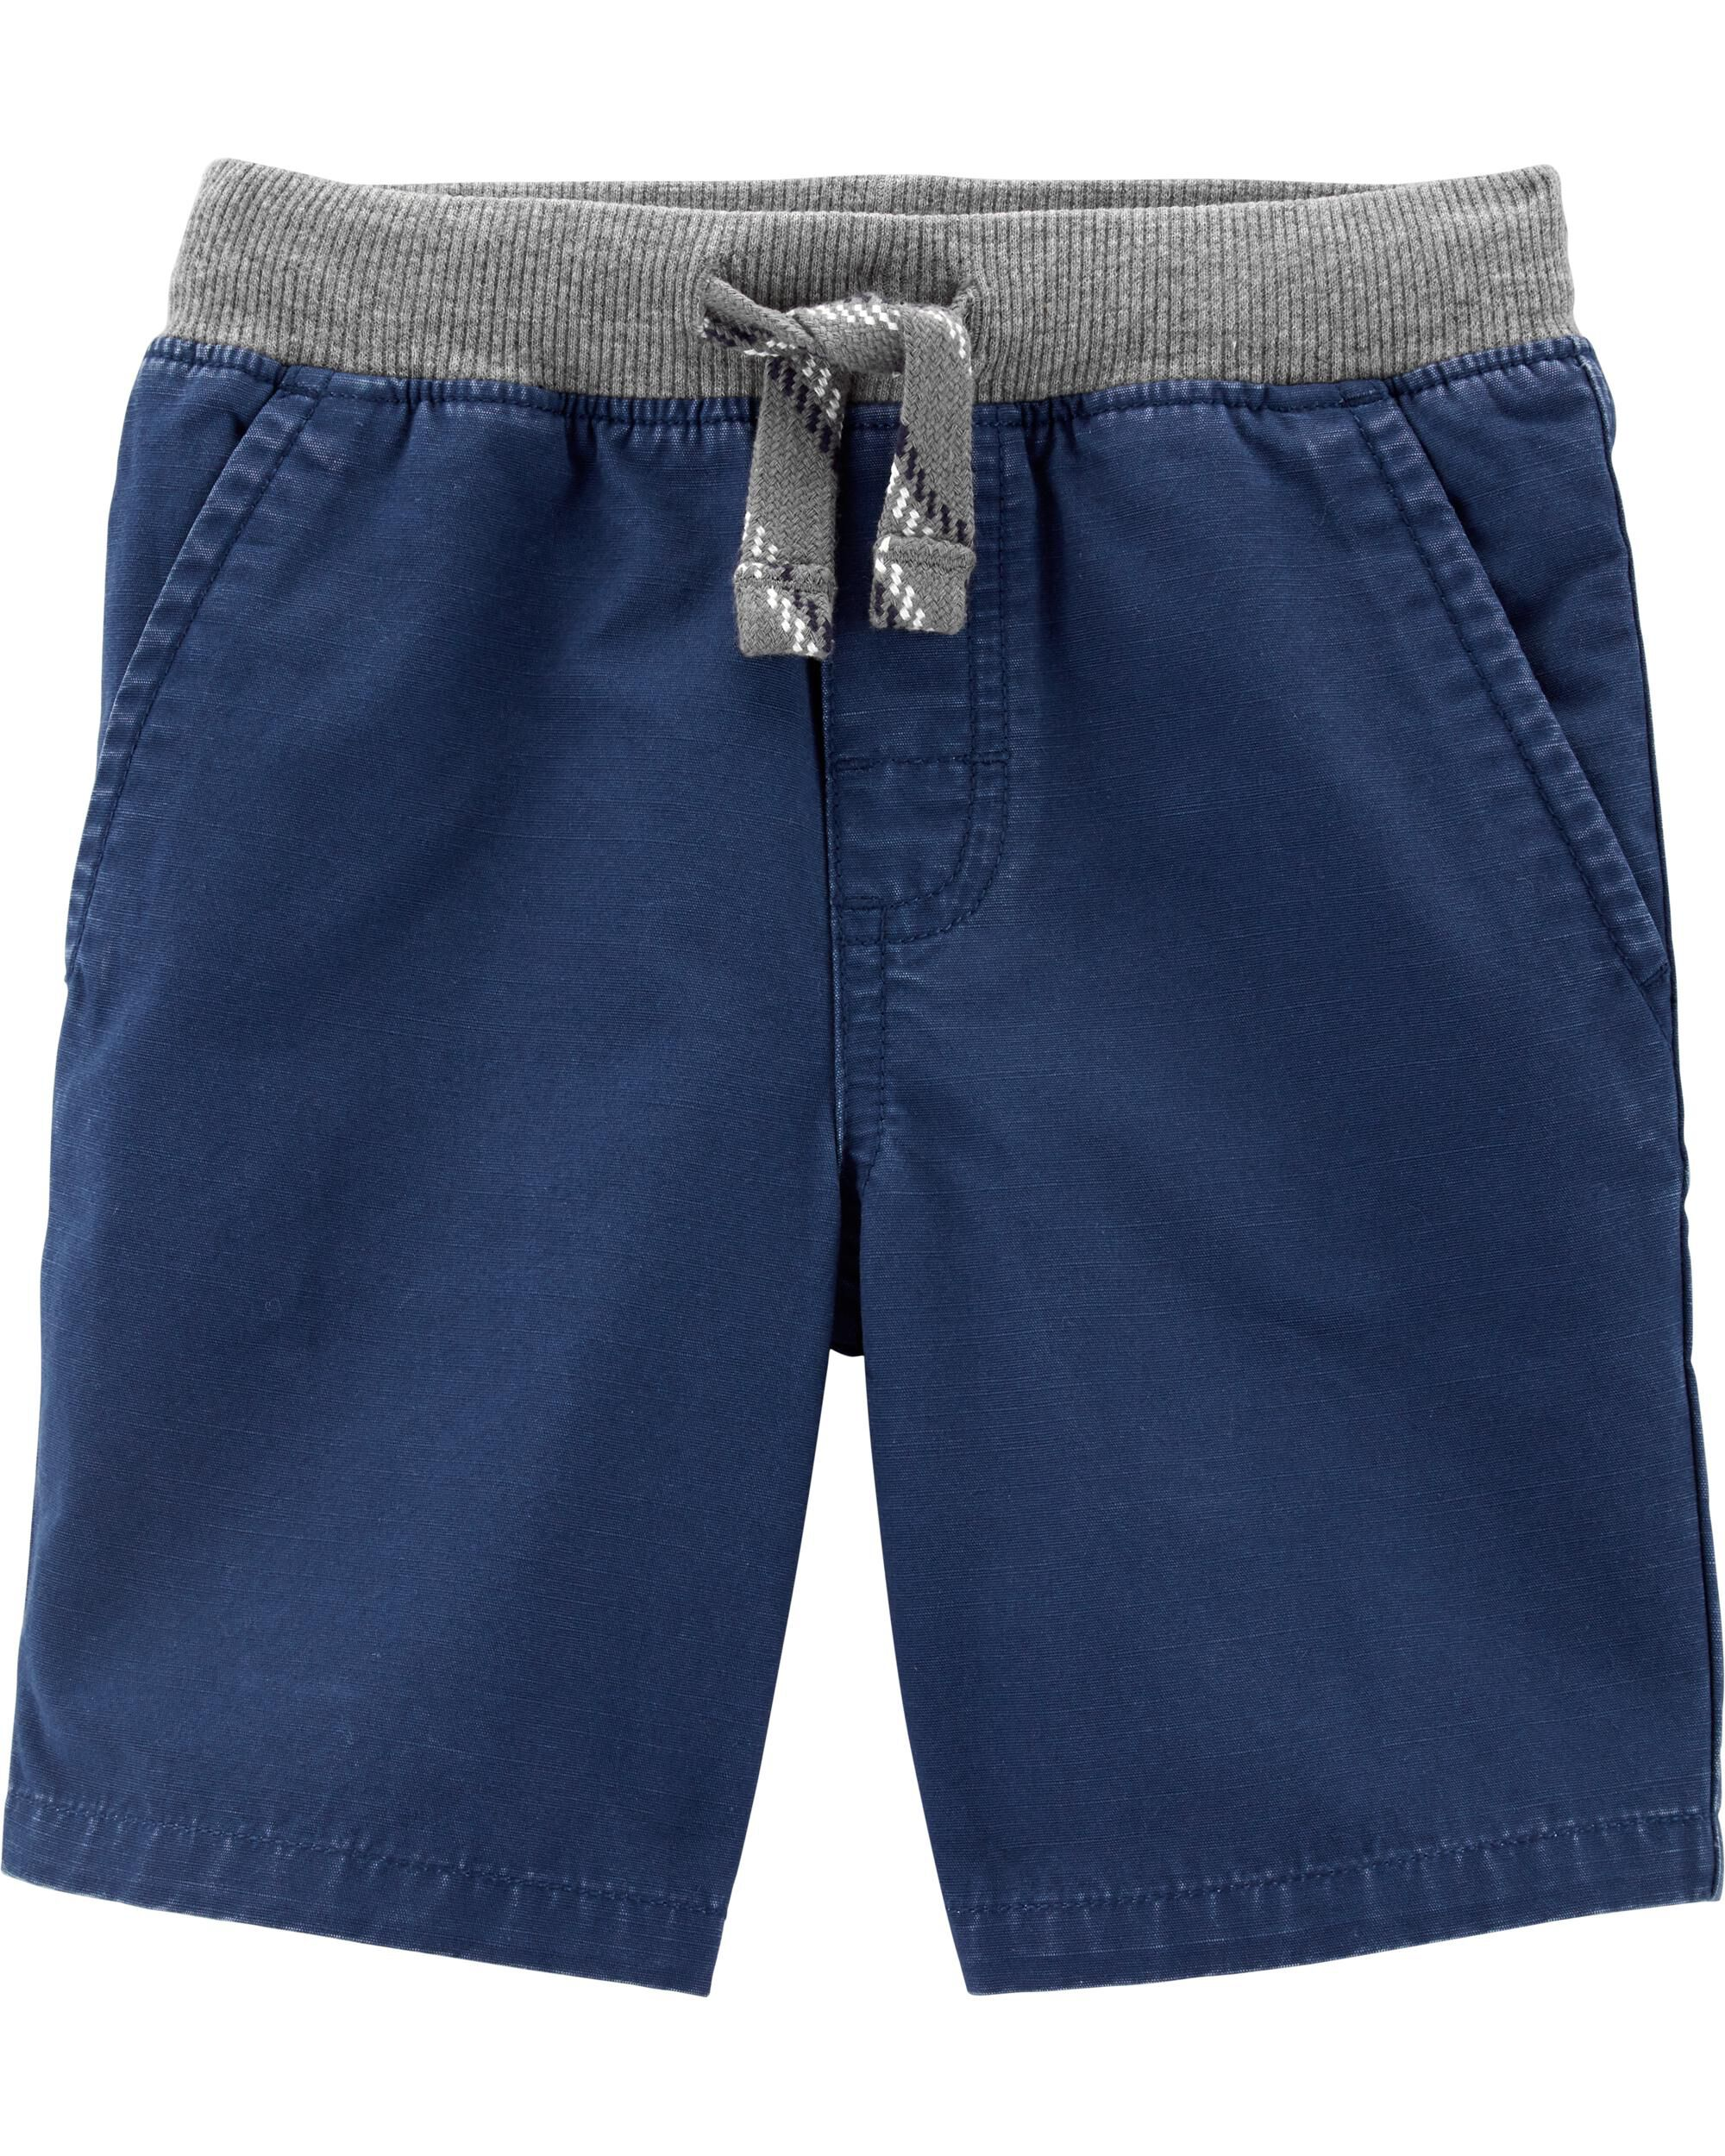 *Clearance*  Easy Pull-On Dock Shorts